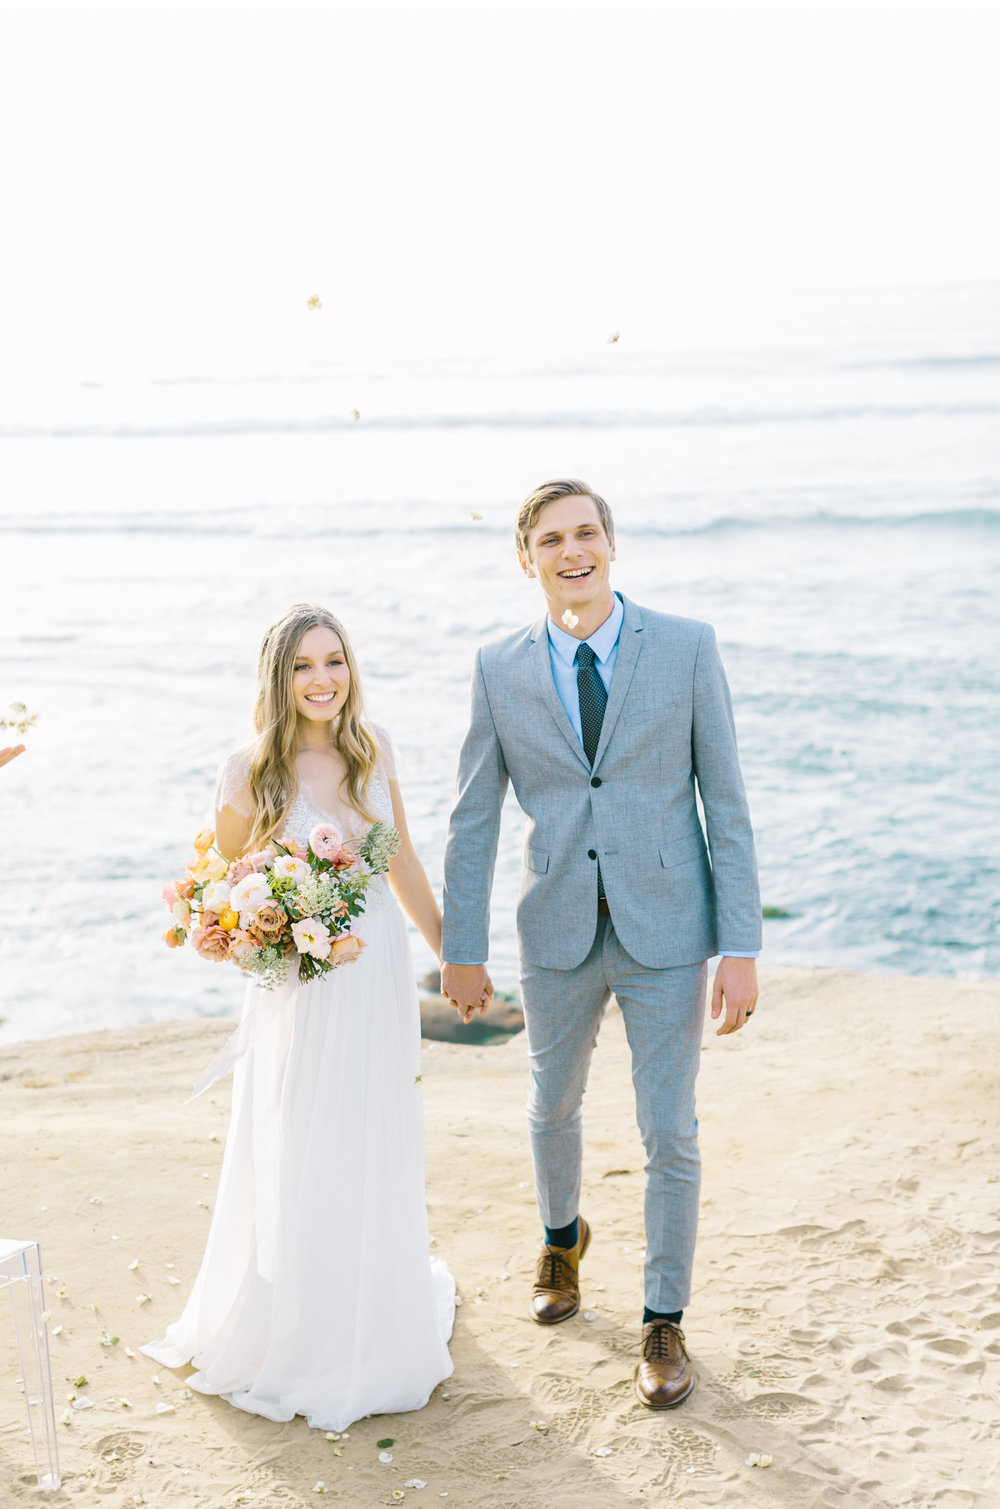 San-Clemente-Wedding-Photographer-Hawaii-Natalie-Schutt-Photography_13.jpg